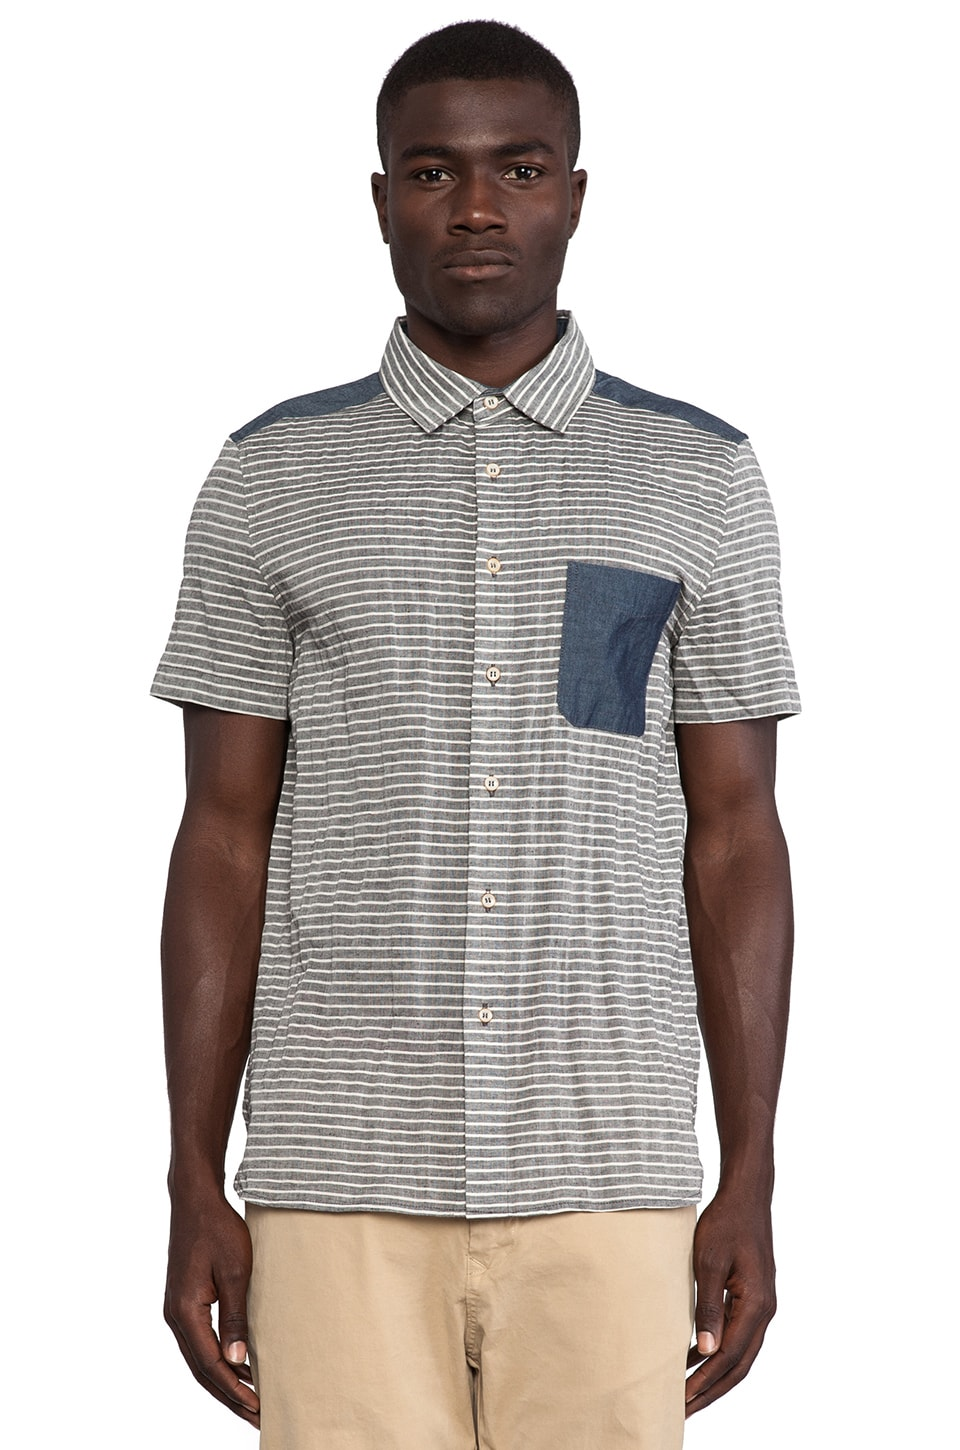 TOVAR Bolan Button Up in Blue Stripe